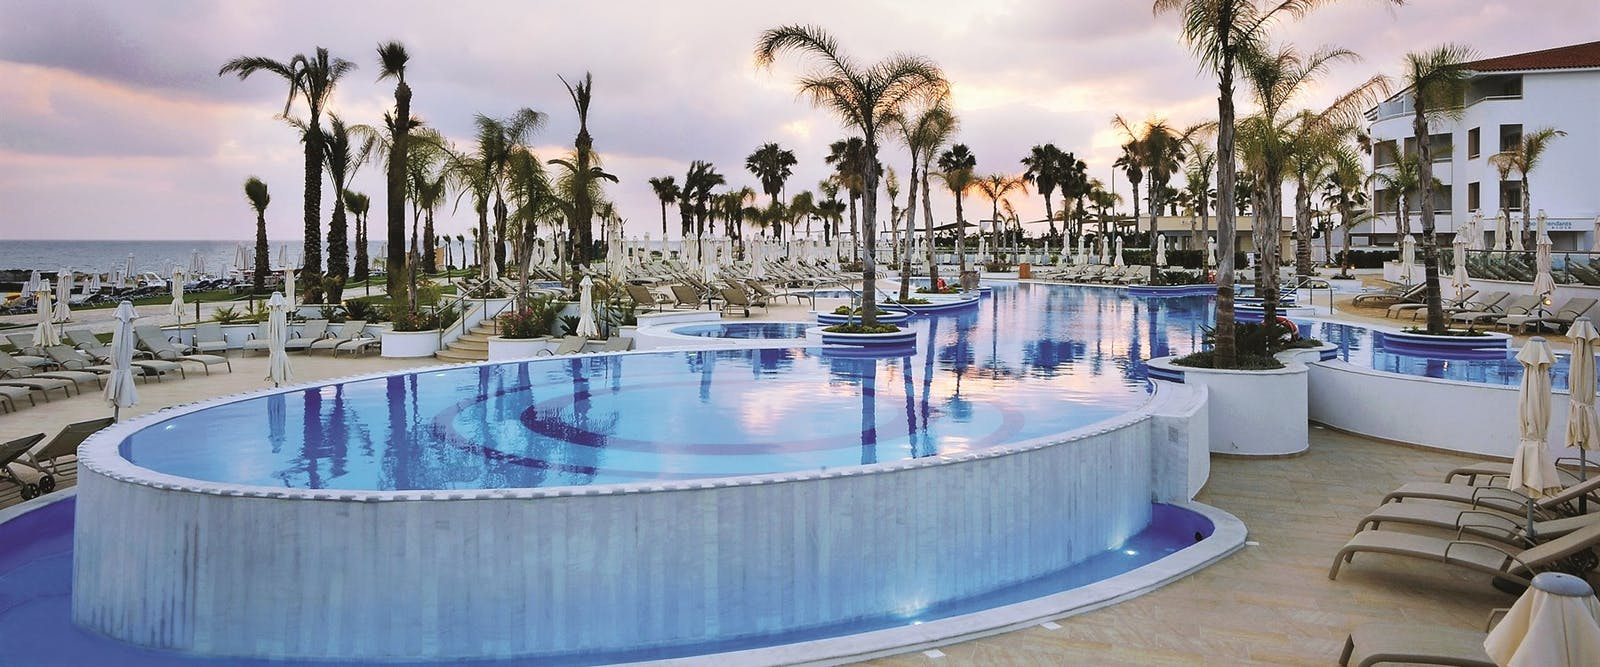 Pool in the Evening, Olympic Lagoon Resort, Paphos, Cyprus